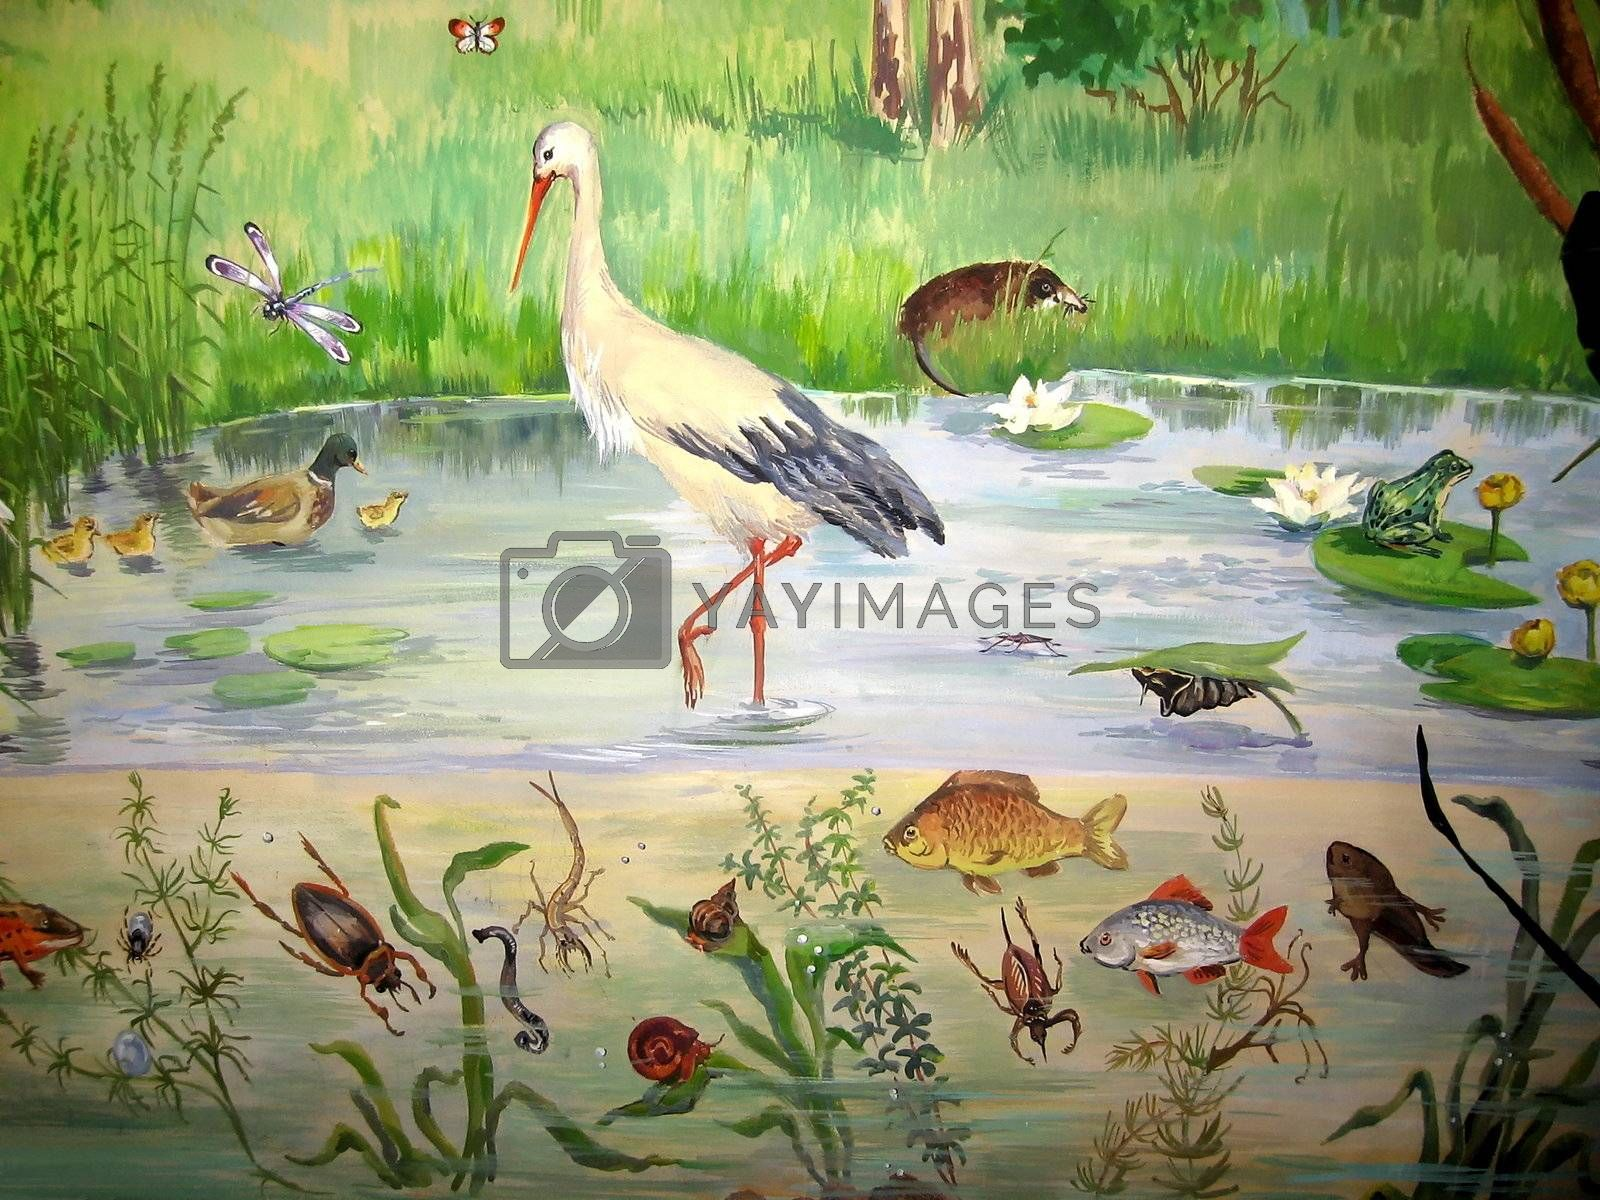 Painted picture with various pond living animals